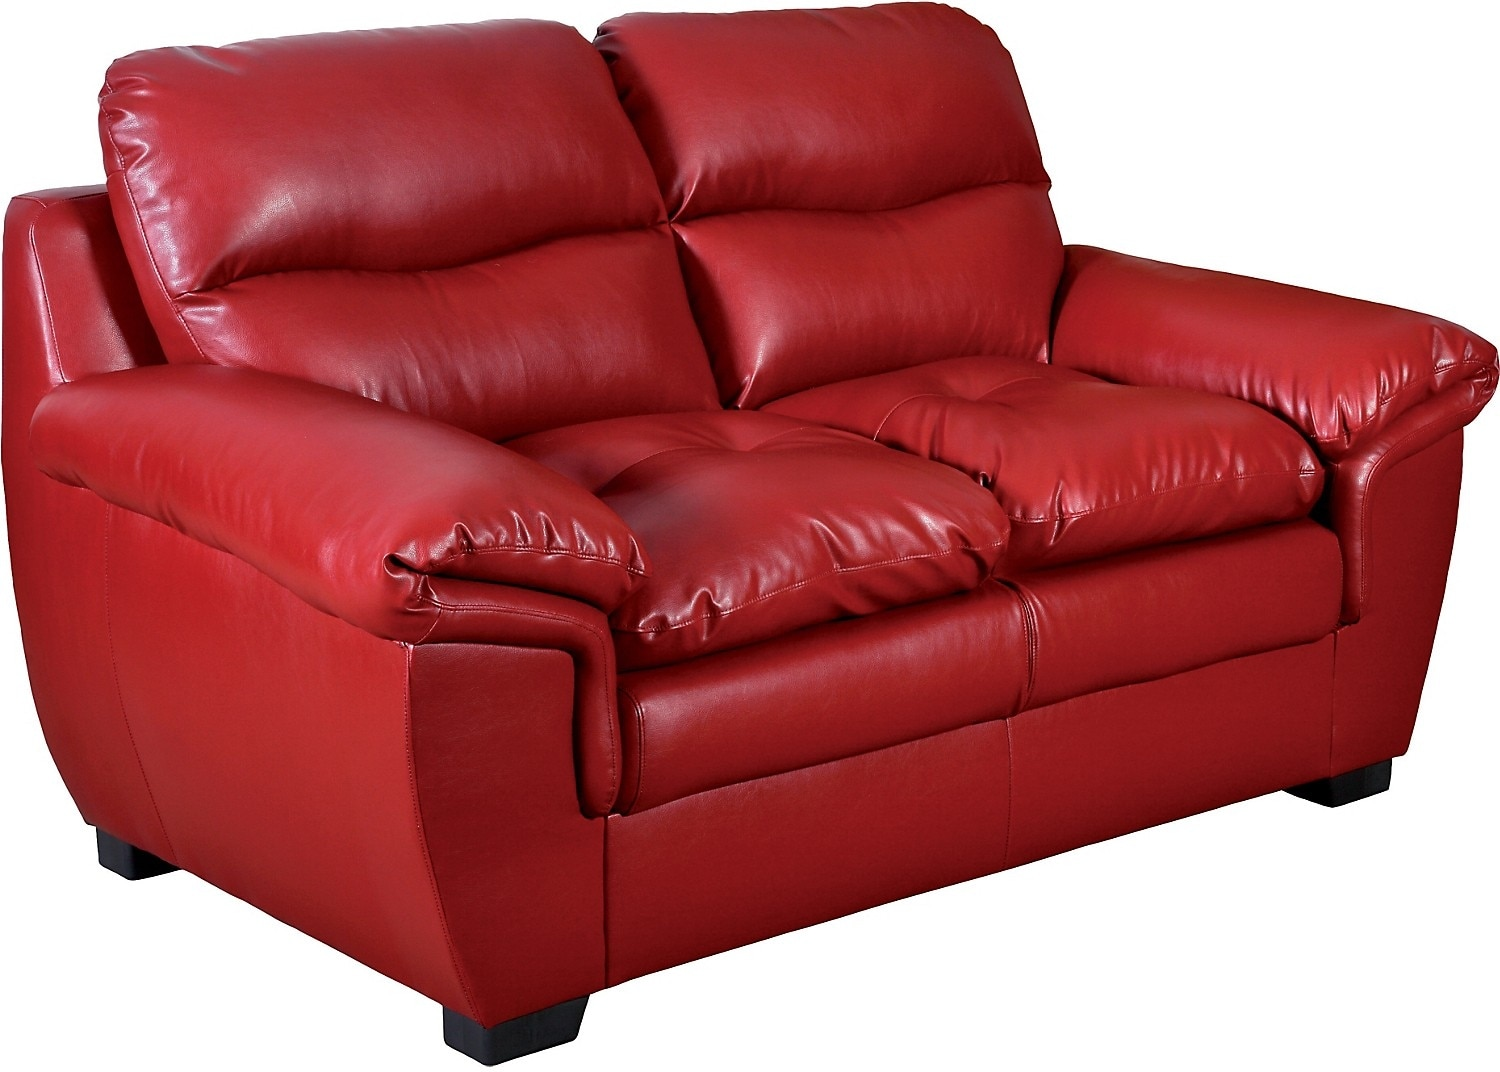 Living Room Furniture - E6 Red Bonded Leather Loveseat